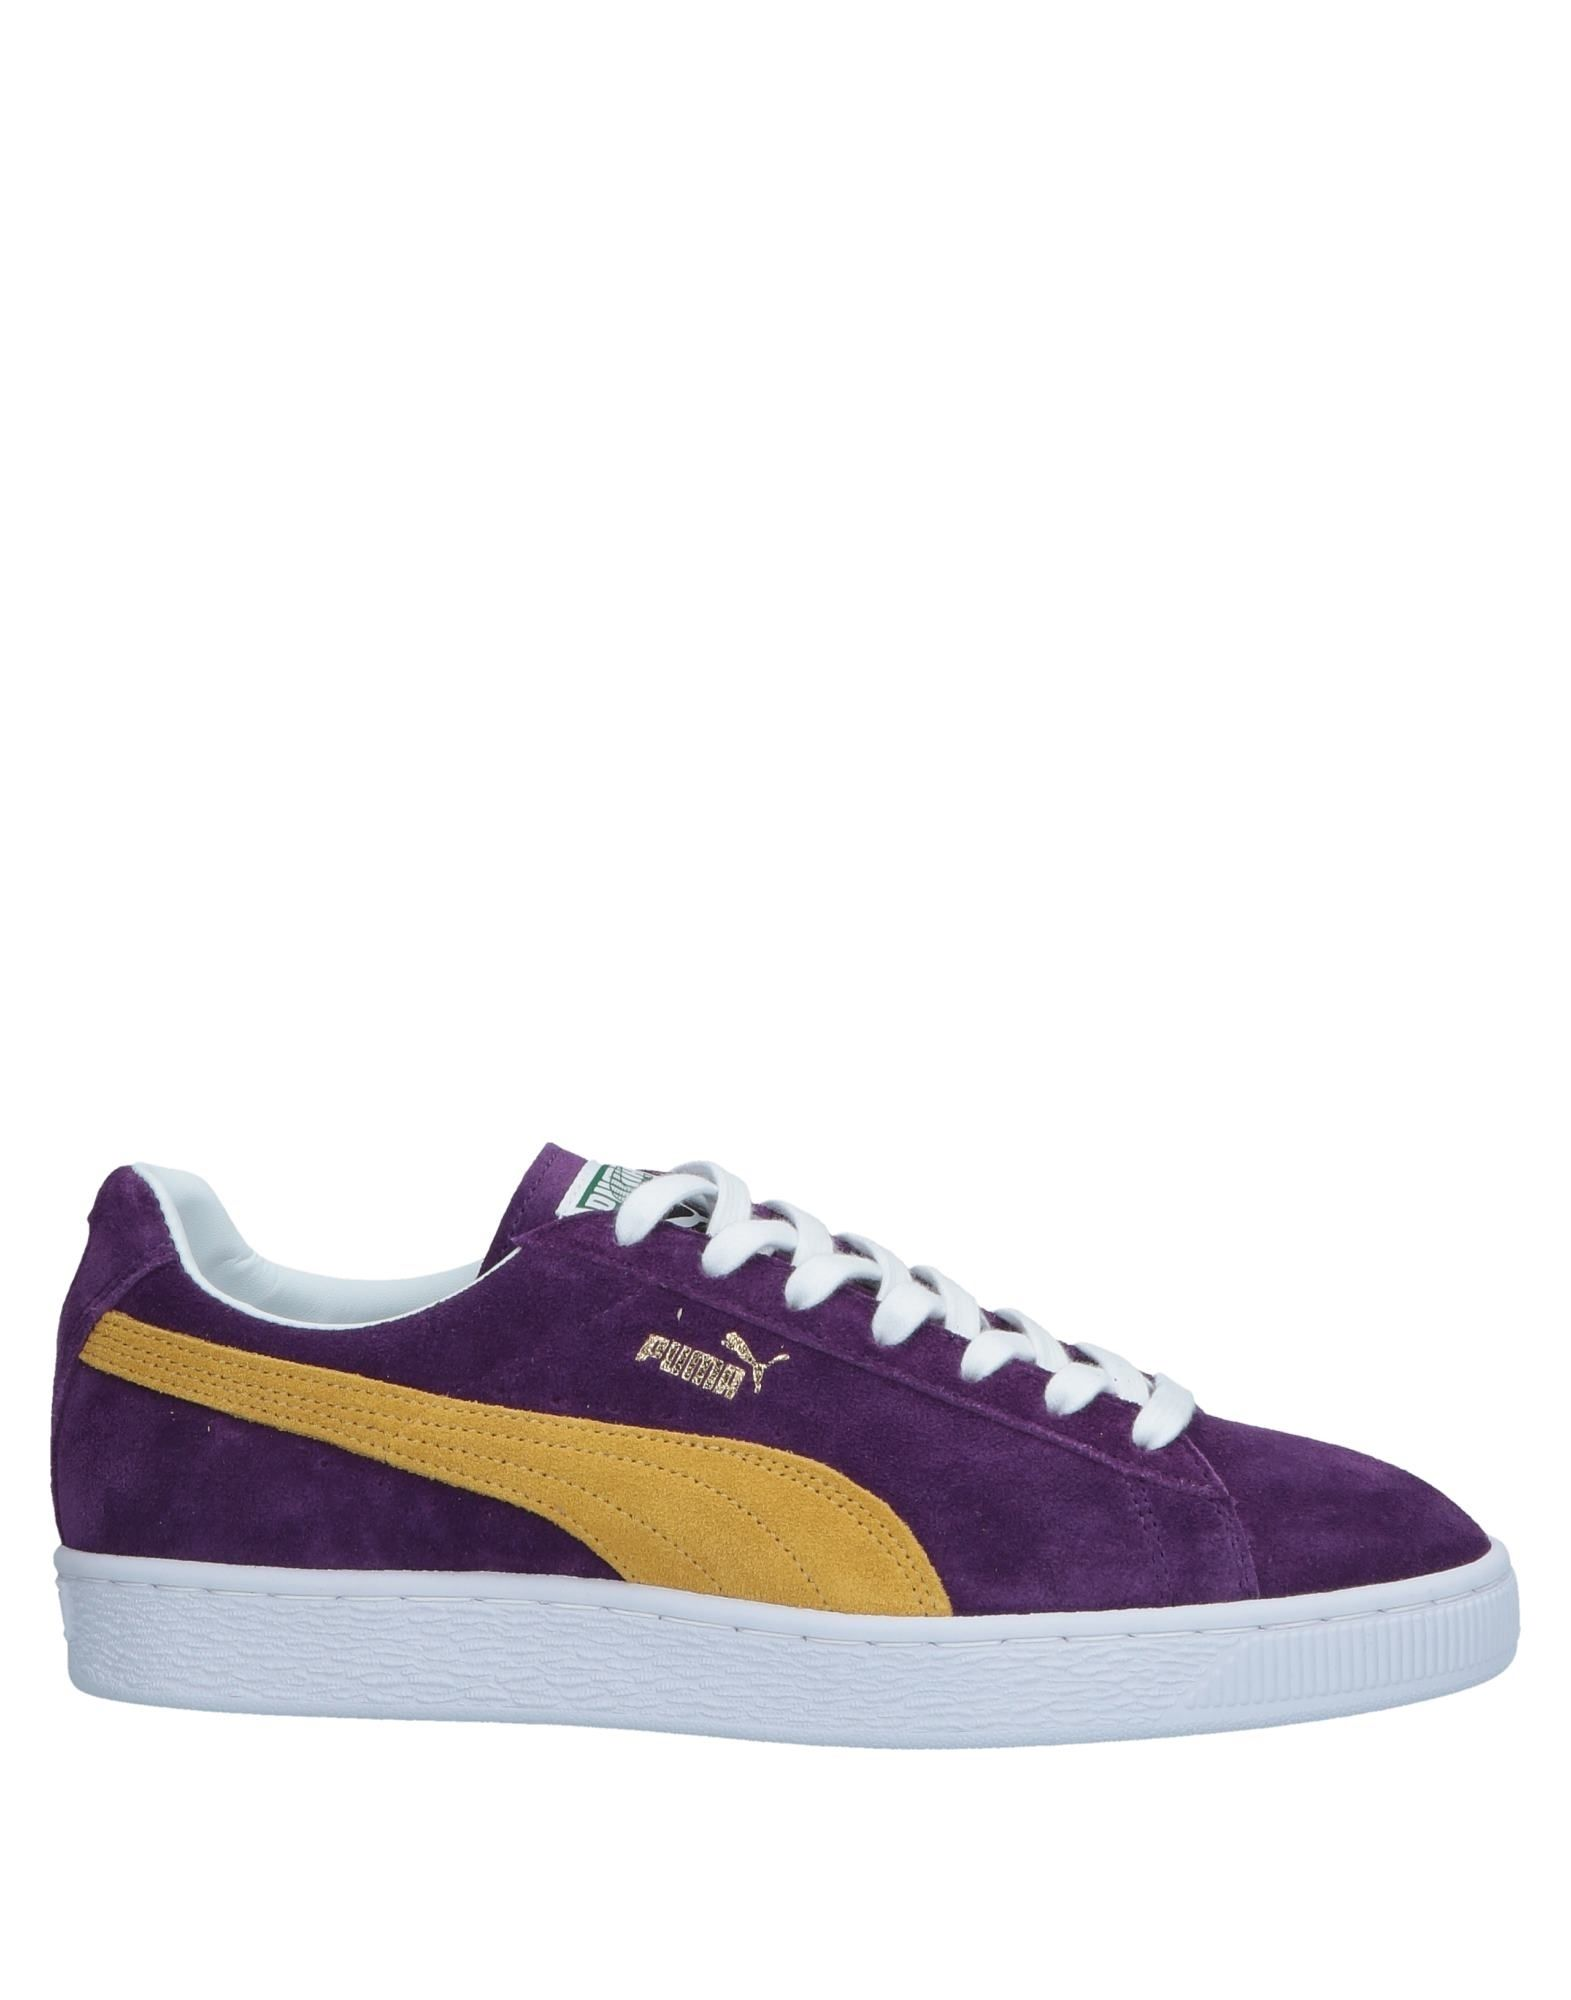 Puma Sneakers - Women Puma Sneakers Kingdom online on  United Kingdom Sneakers - 11559335NT 8f250d